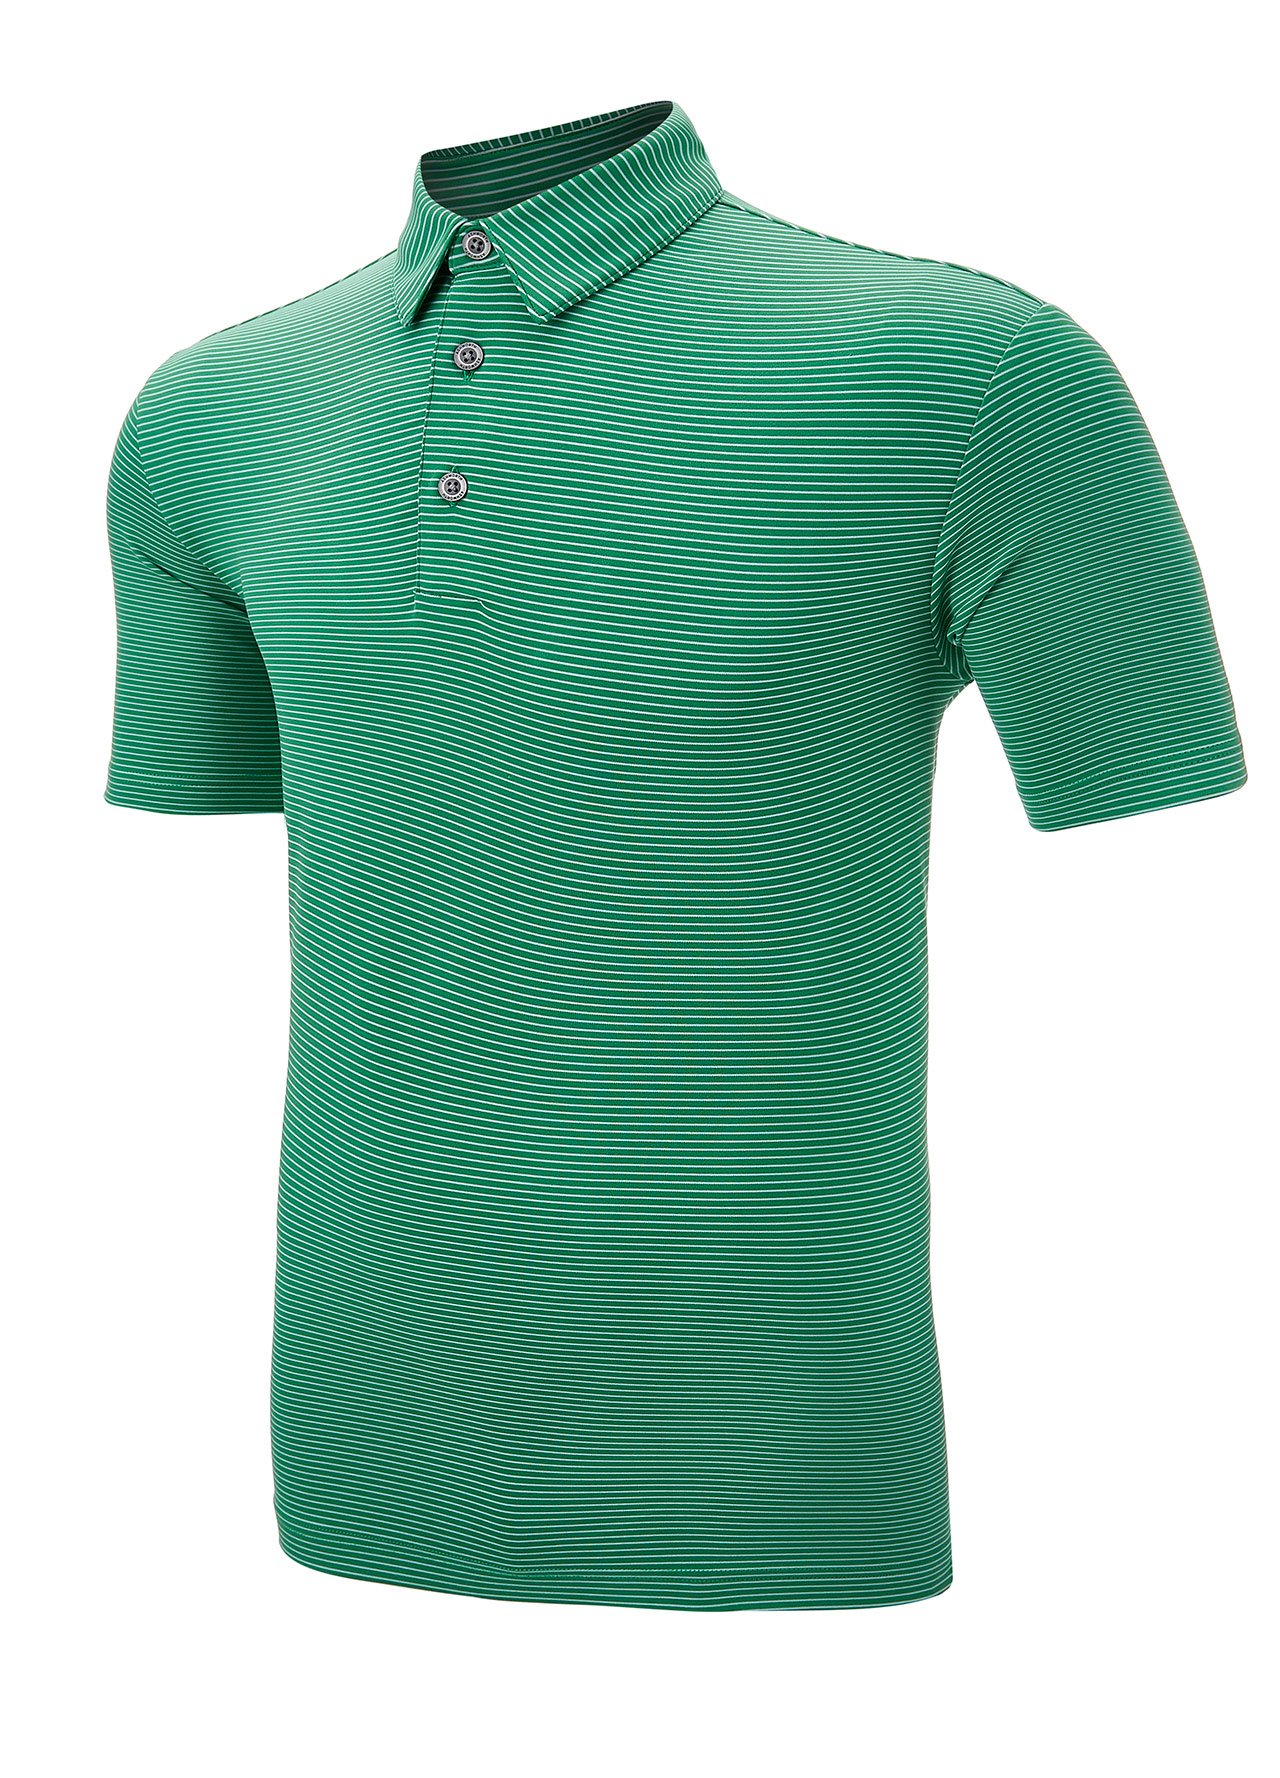 Ashworth ez tec golf polo shirt eucalyptus large ebay